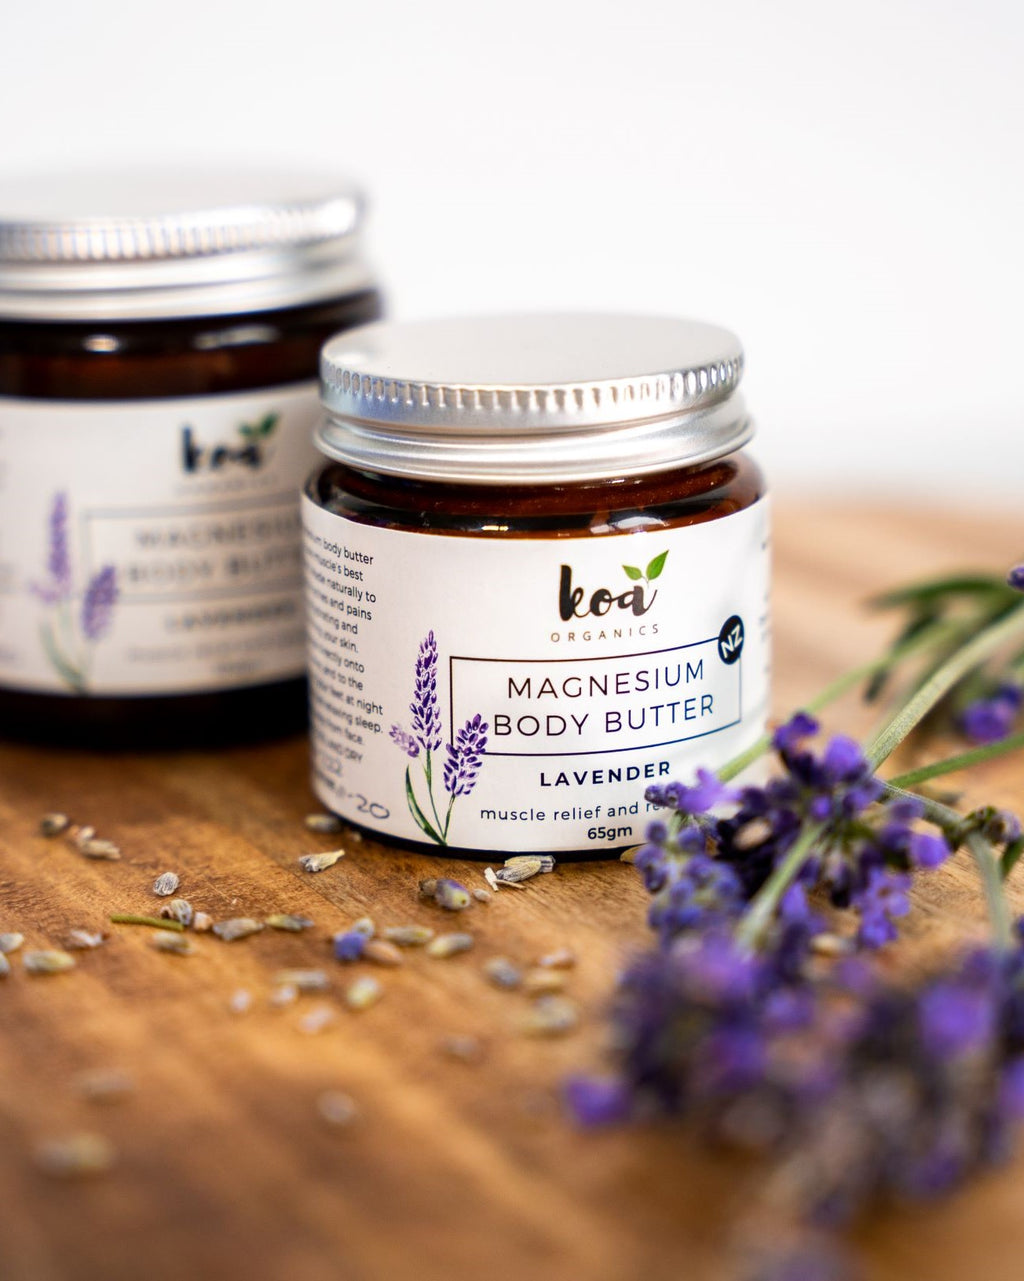 Organic Magnesium Body Butter with Lavender for relaxed muscles and sleep